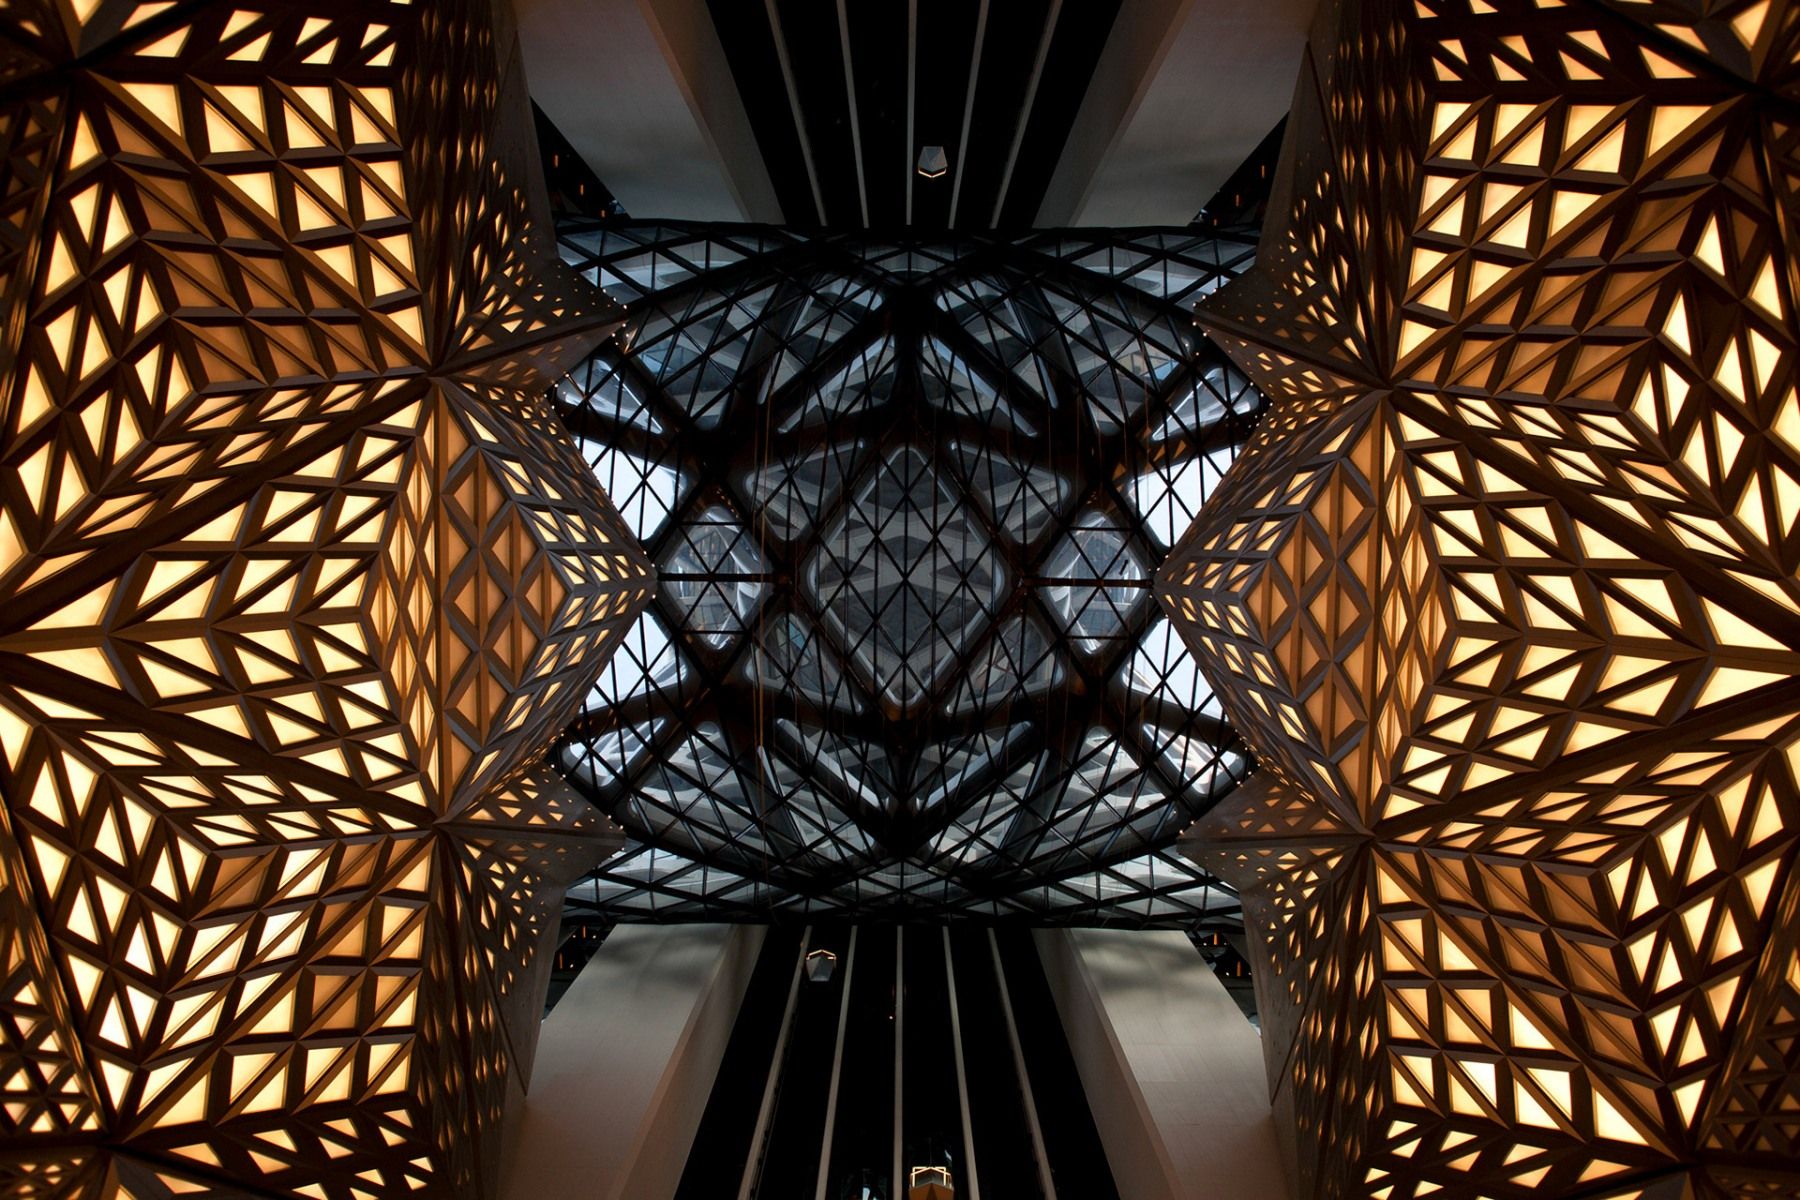 Architectural-Photography-by-Ekaterina-Busygina-Daily-design-inspiration-for-creatives-Inspirati-25